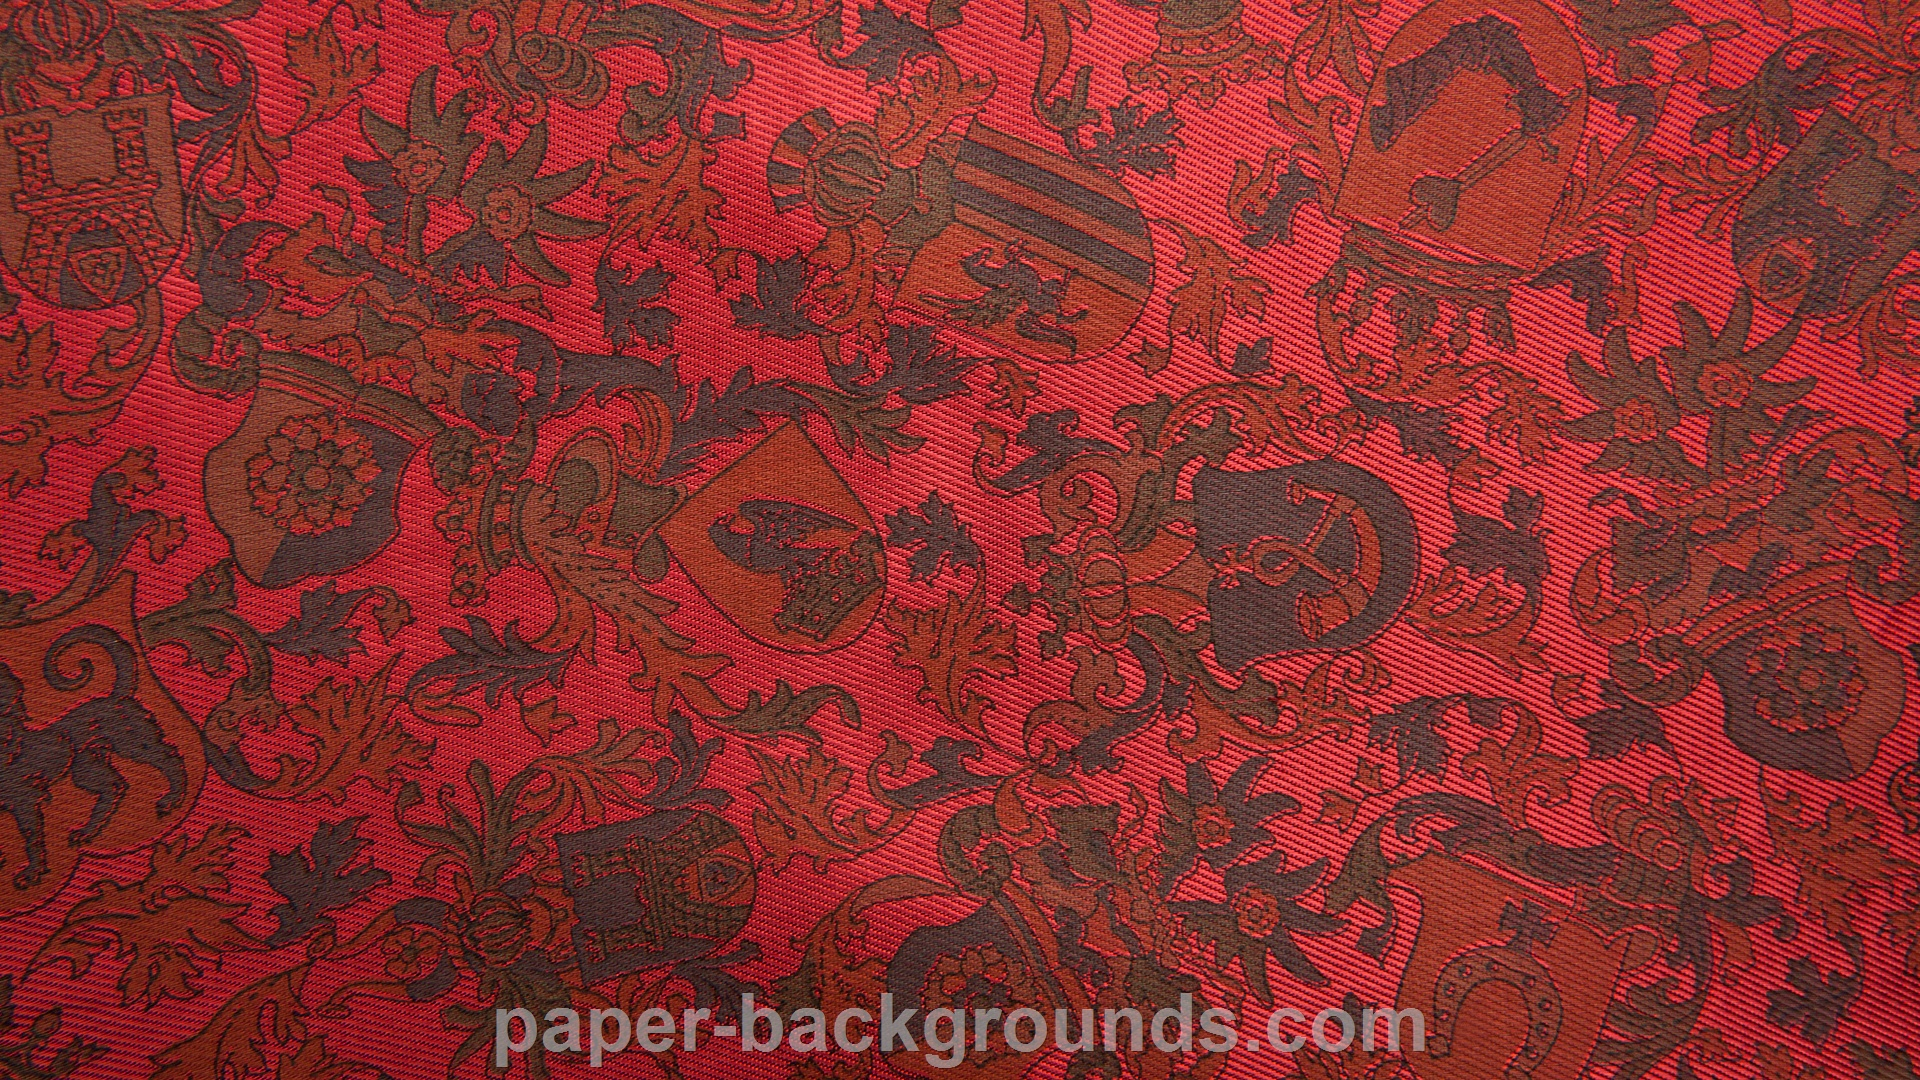 Red Fabric classy Patterns Background HD